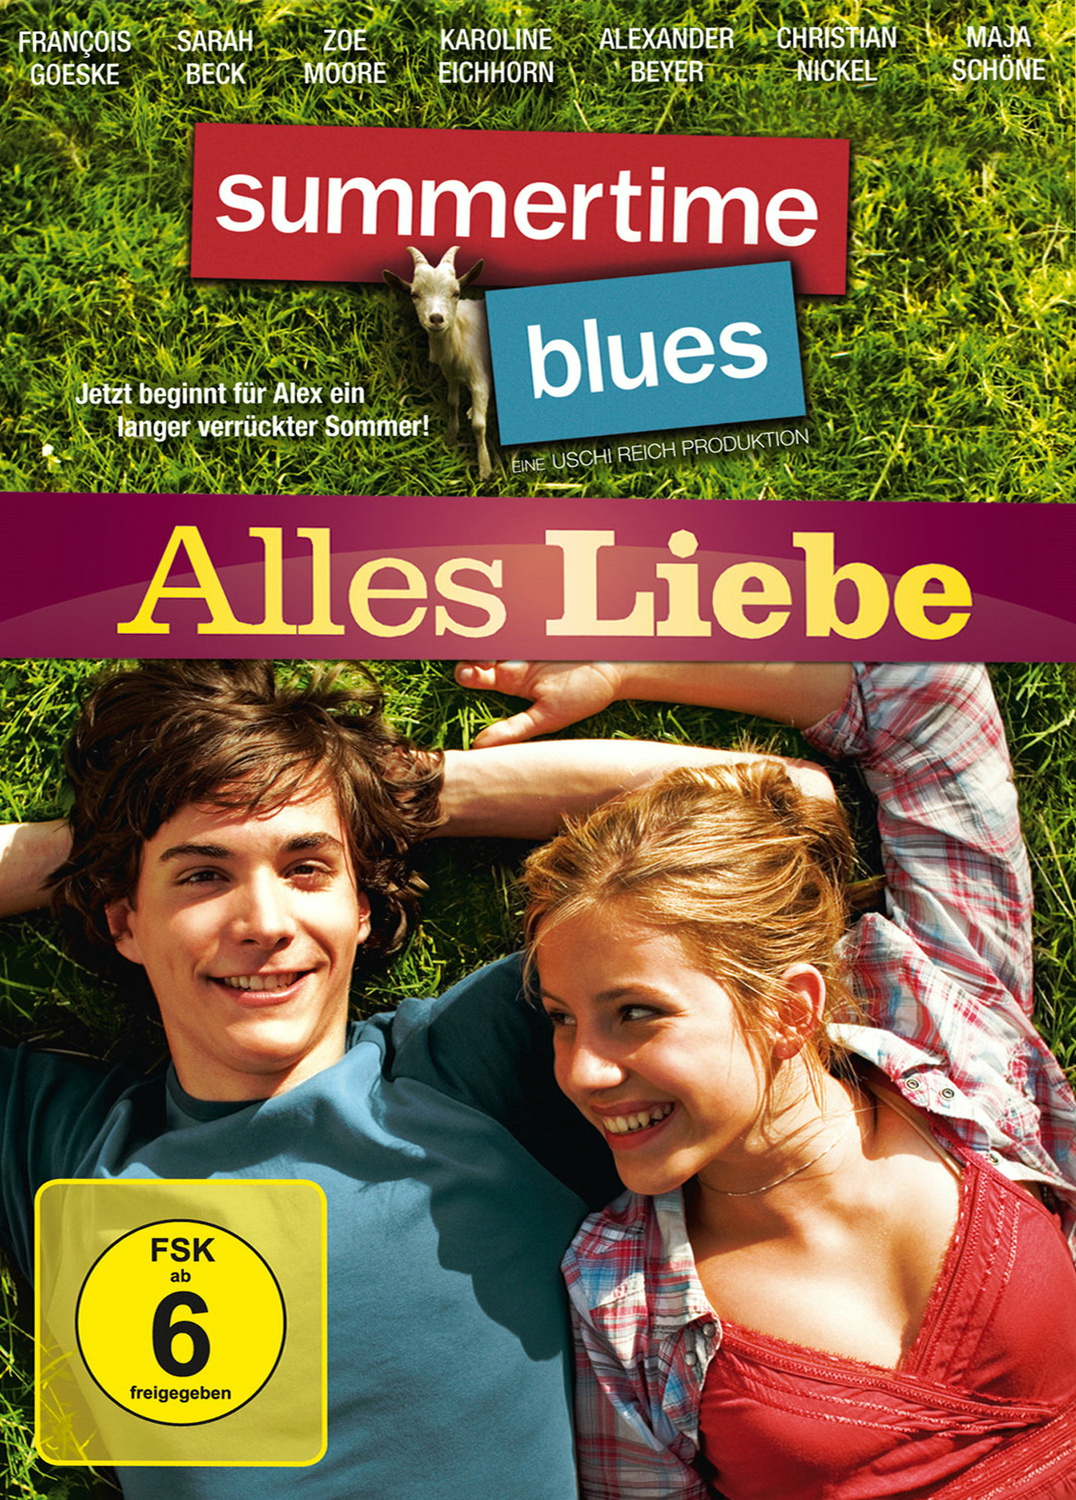 Summertime Blues [Alles Liebe Edition]